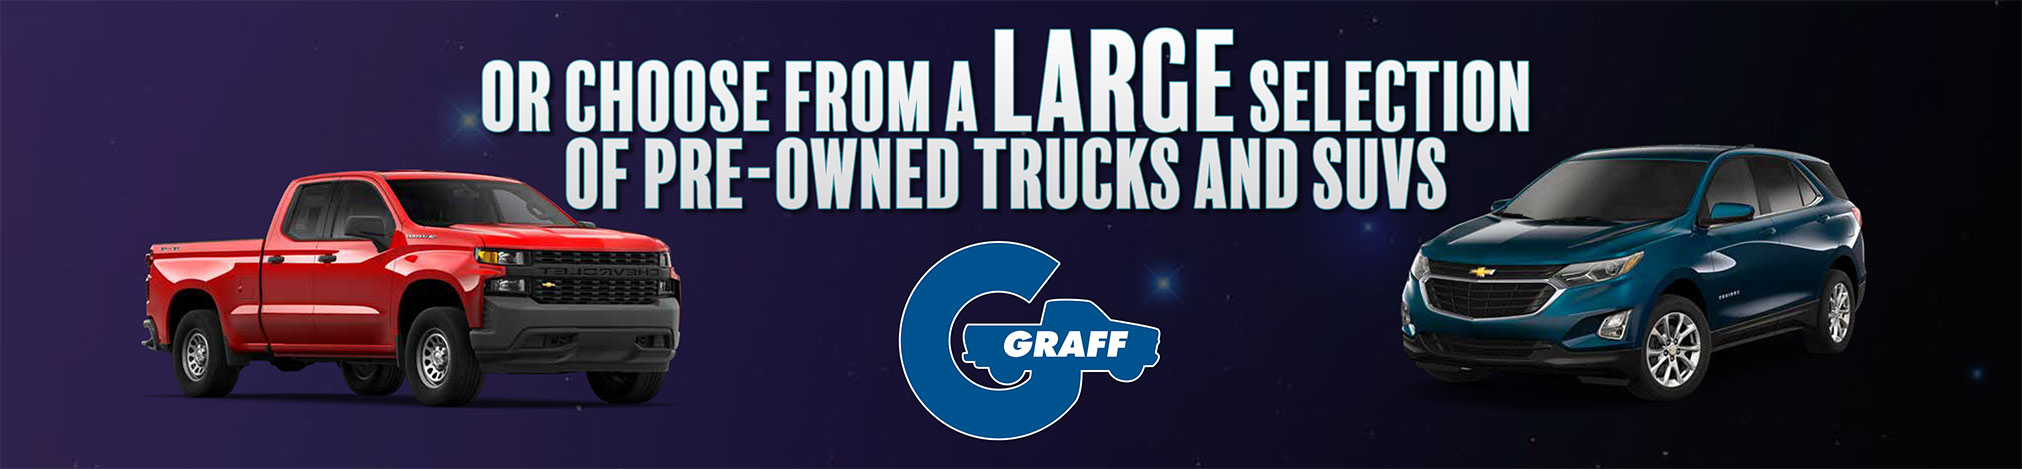 We have a large selection of trucks and SUVs